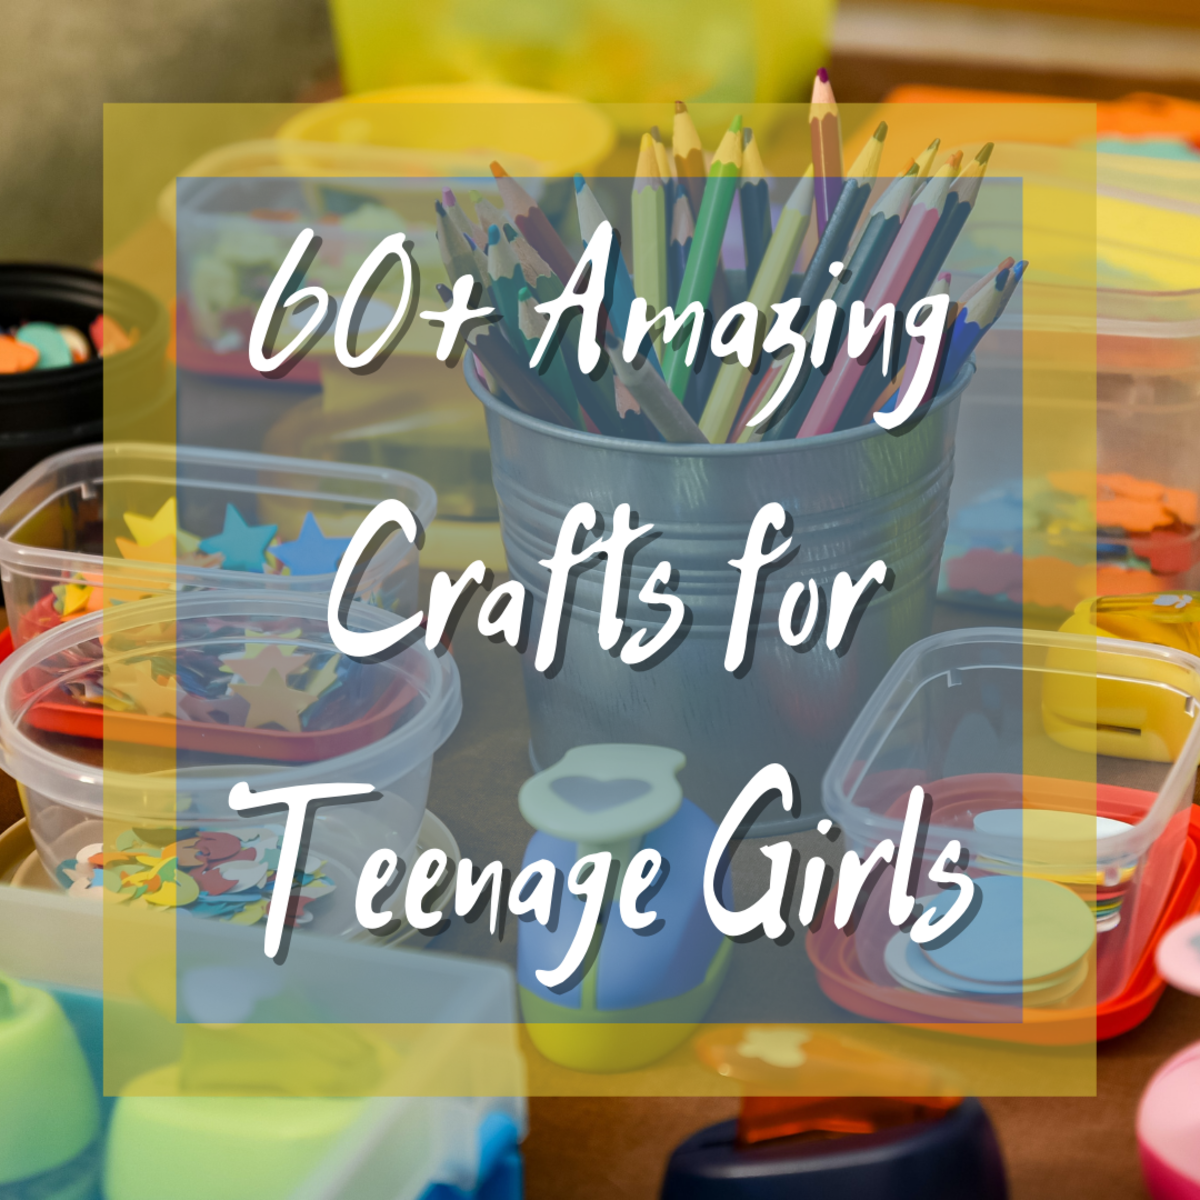 In this article you'll find over 60 awesome craft ideas perfect for teenage girls!